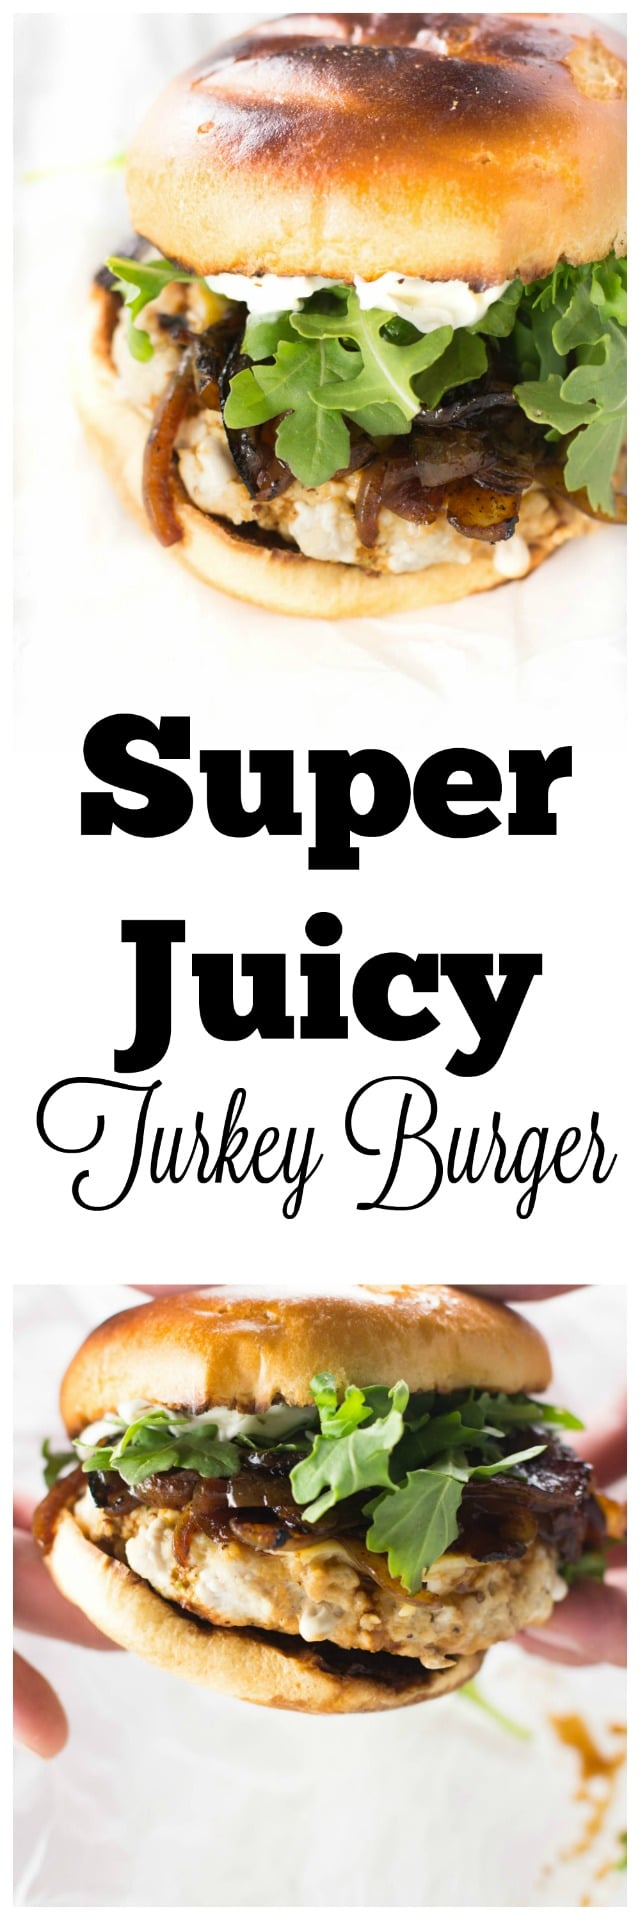 An incredibly moist and delicious grilled turkey burger blended with tarragon and ground mustard! Plus learn the super simple trick to keep your burgers incredibly moist and juicy! #ad